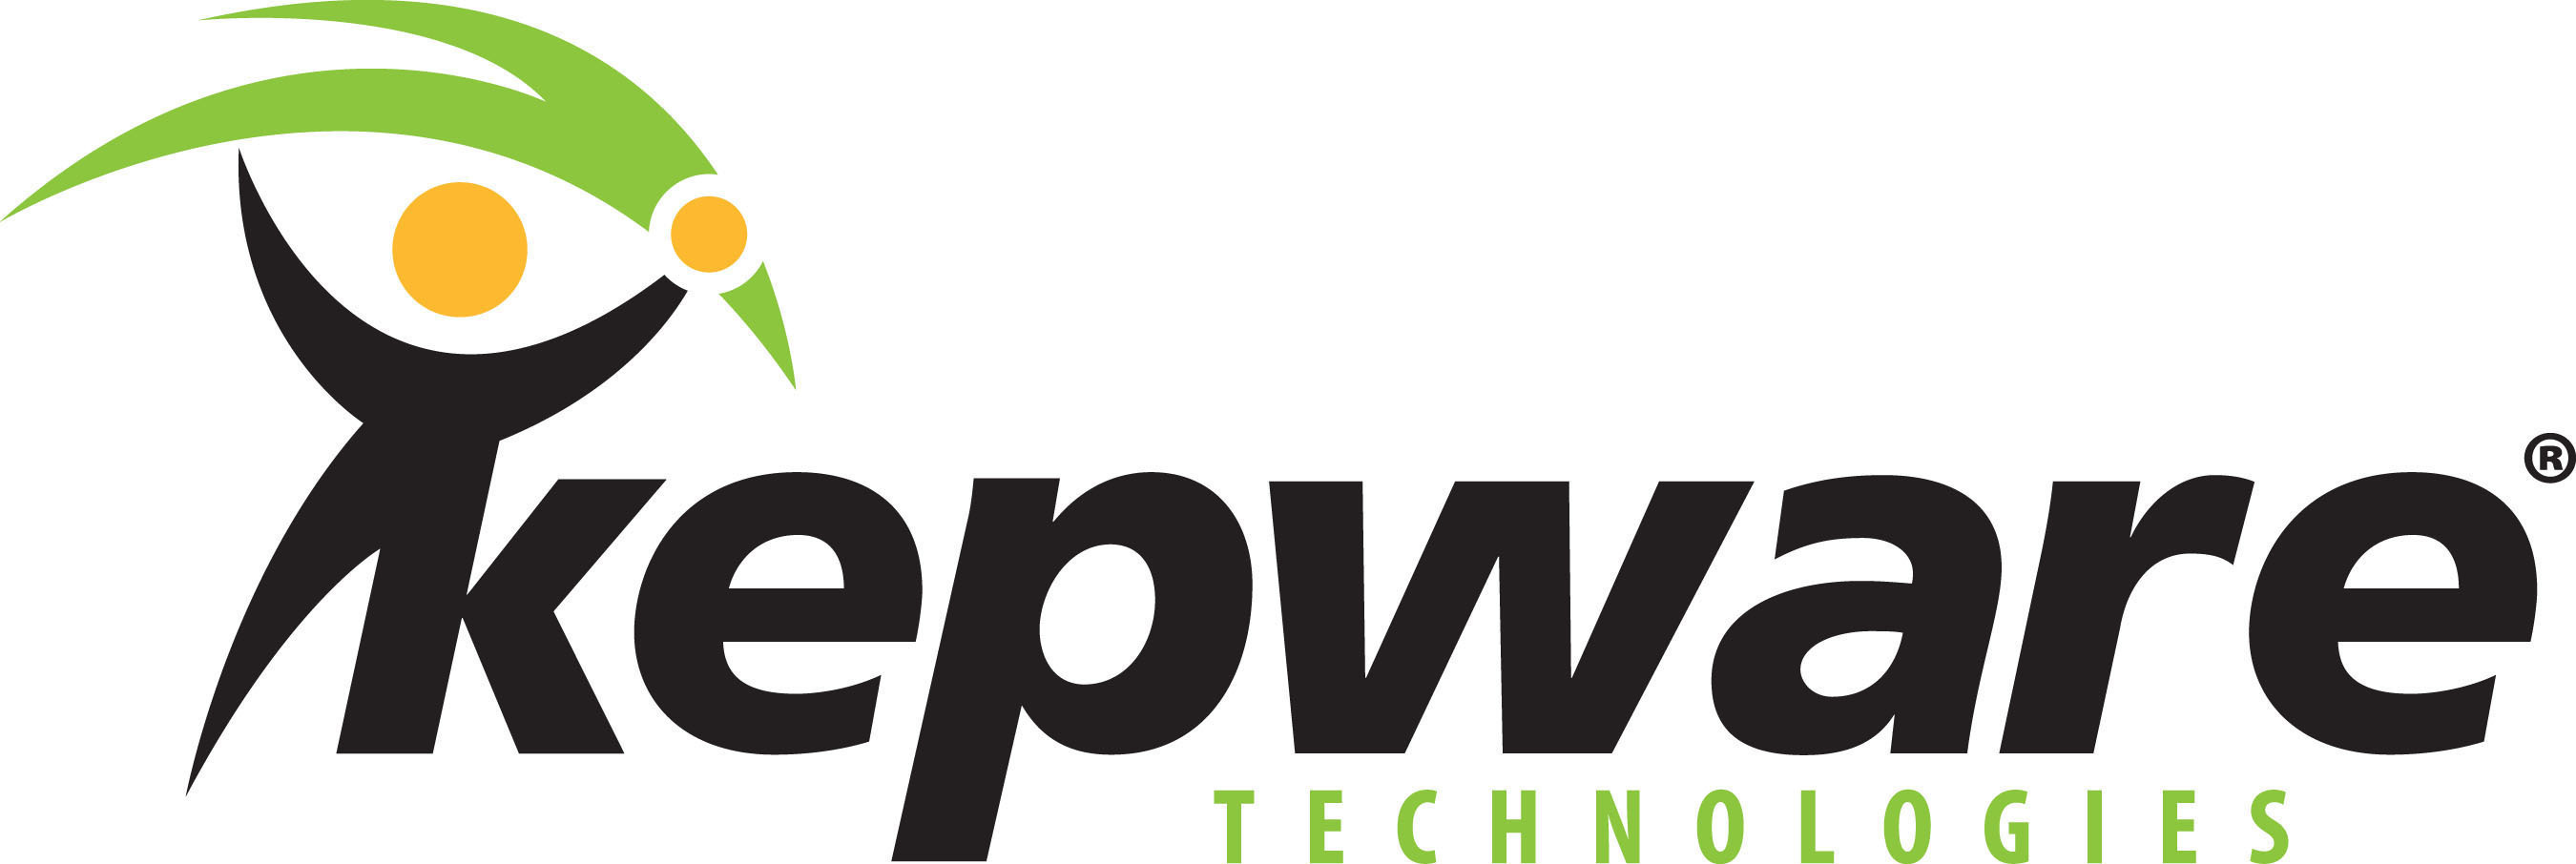 Pantera Energy Implements Modern SCADA System by Kepware and Inductive Automation to Improve Oil Production Operations